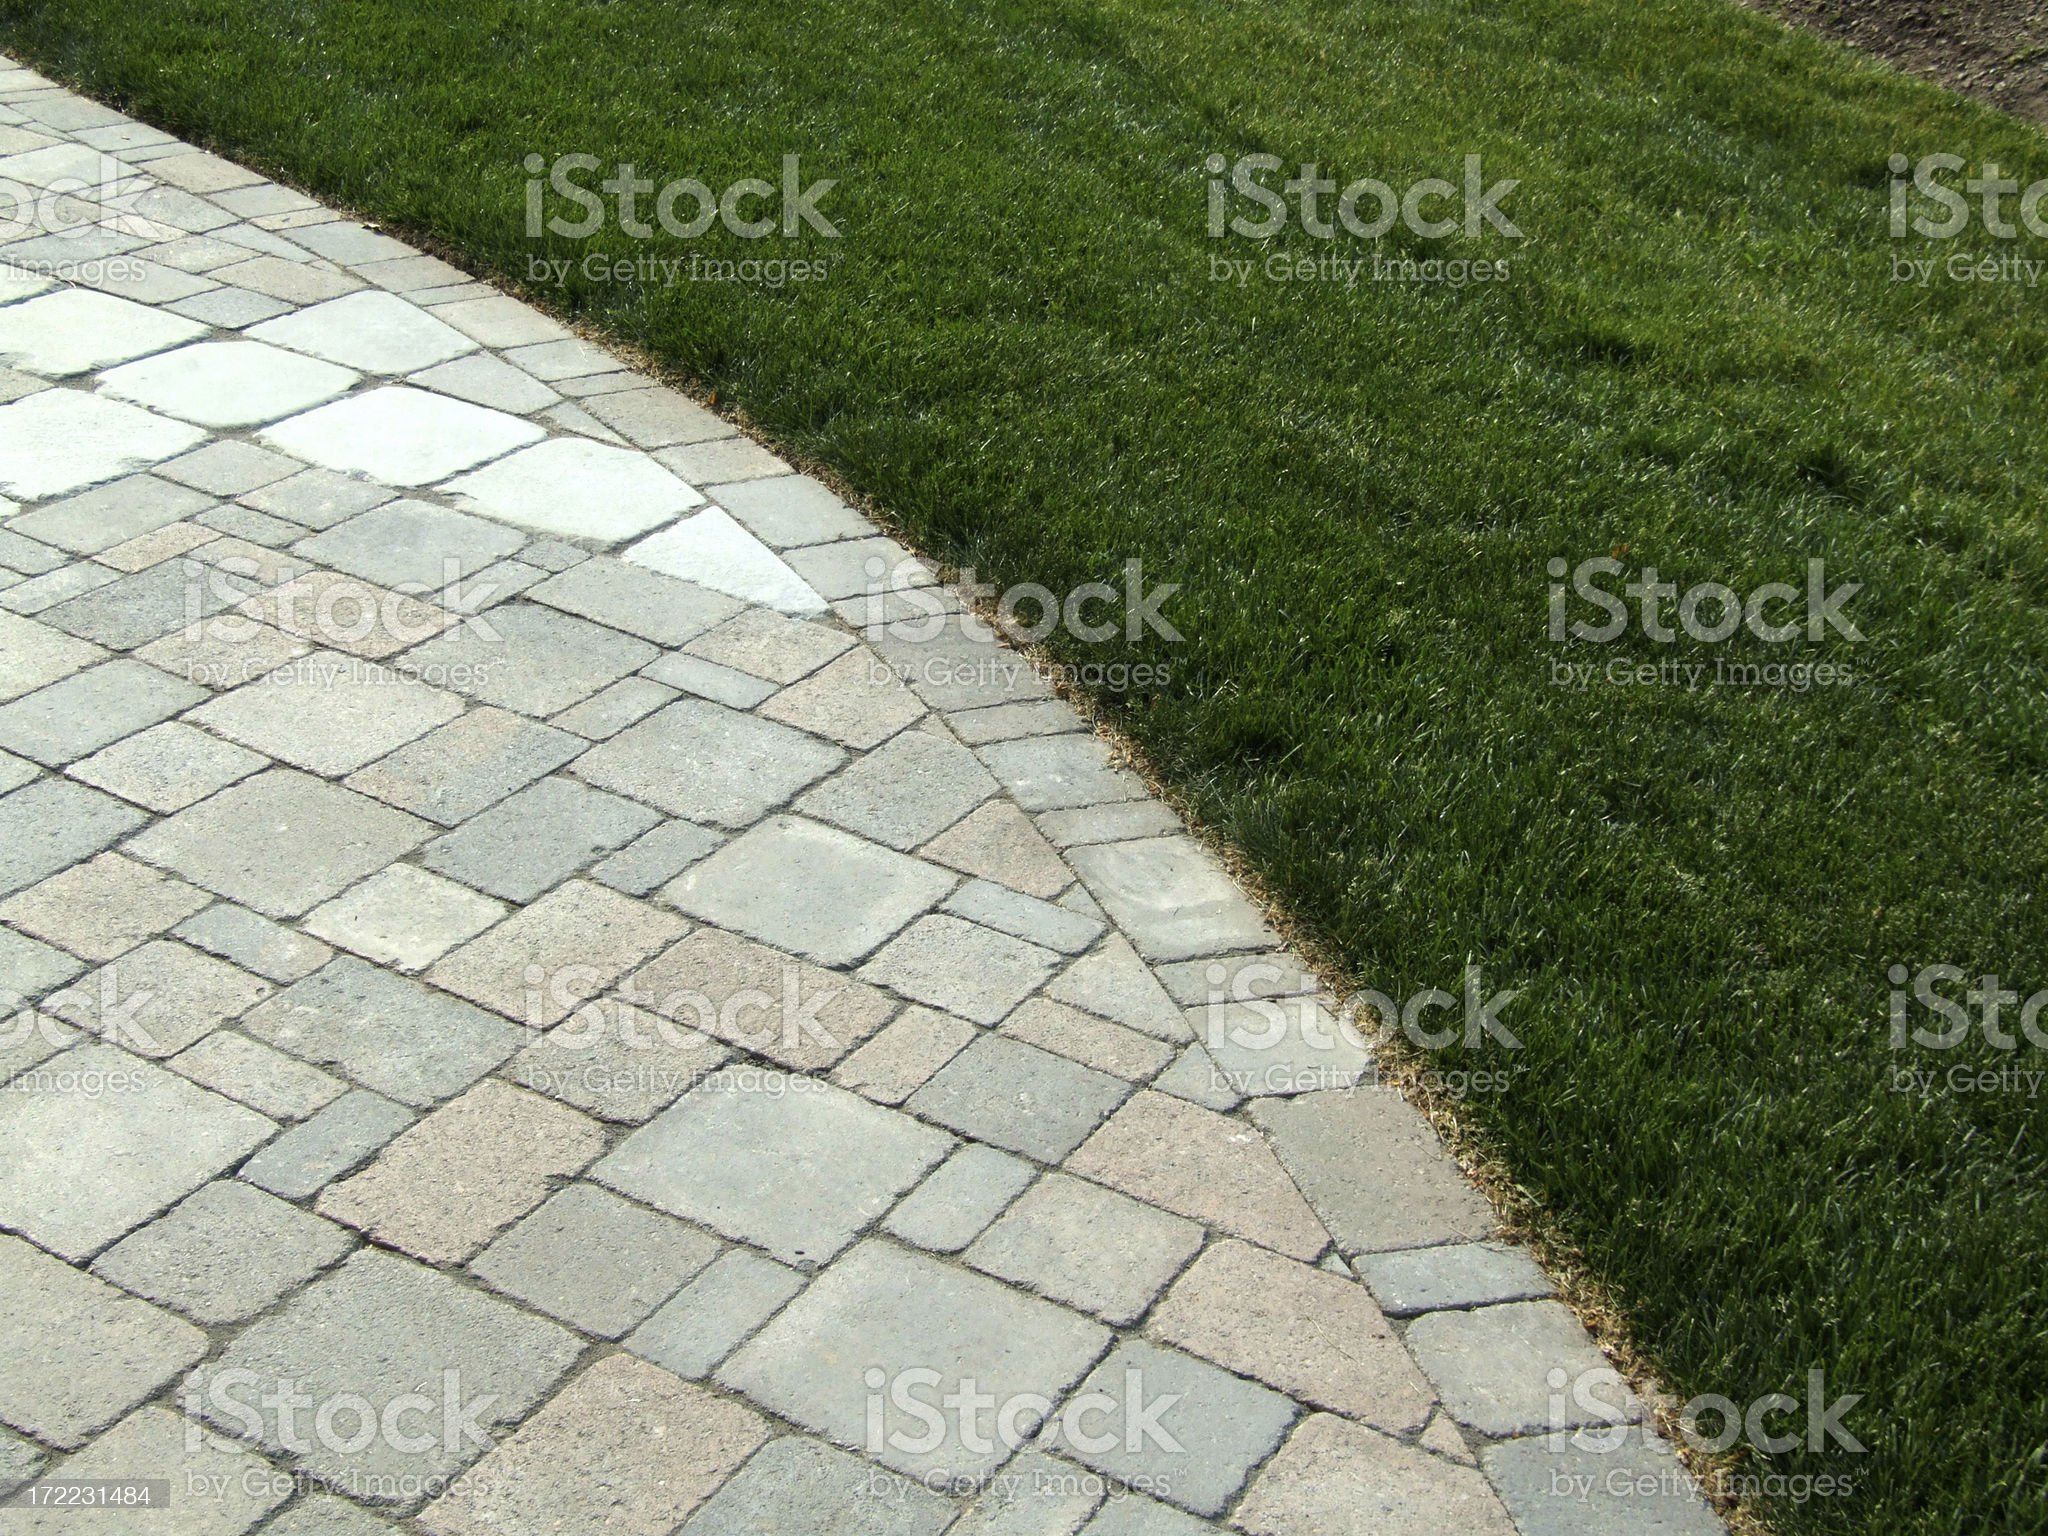 Curved Stones and Grass royalty-free stock photo